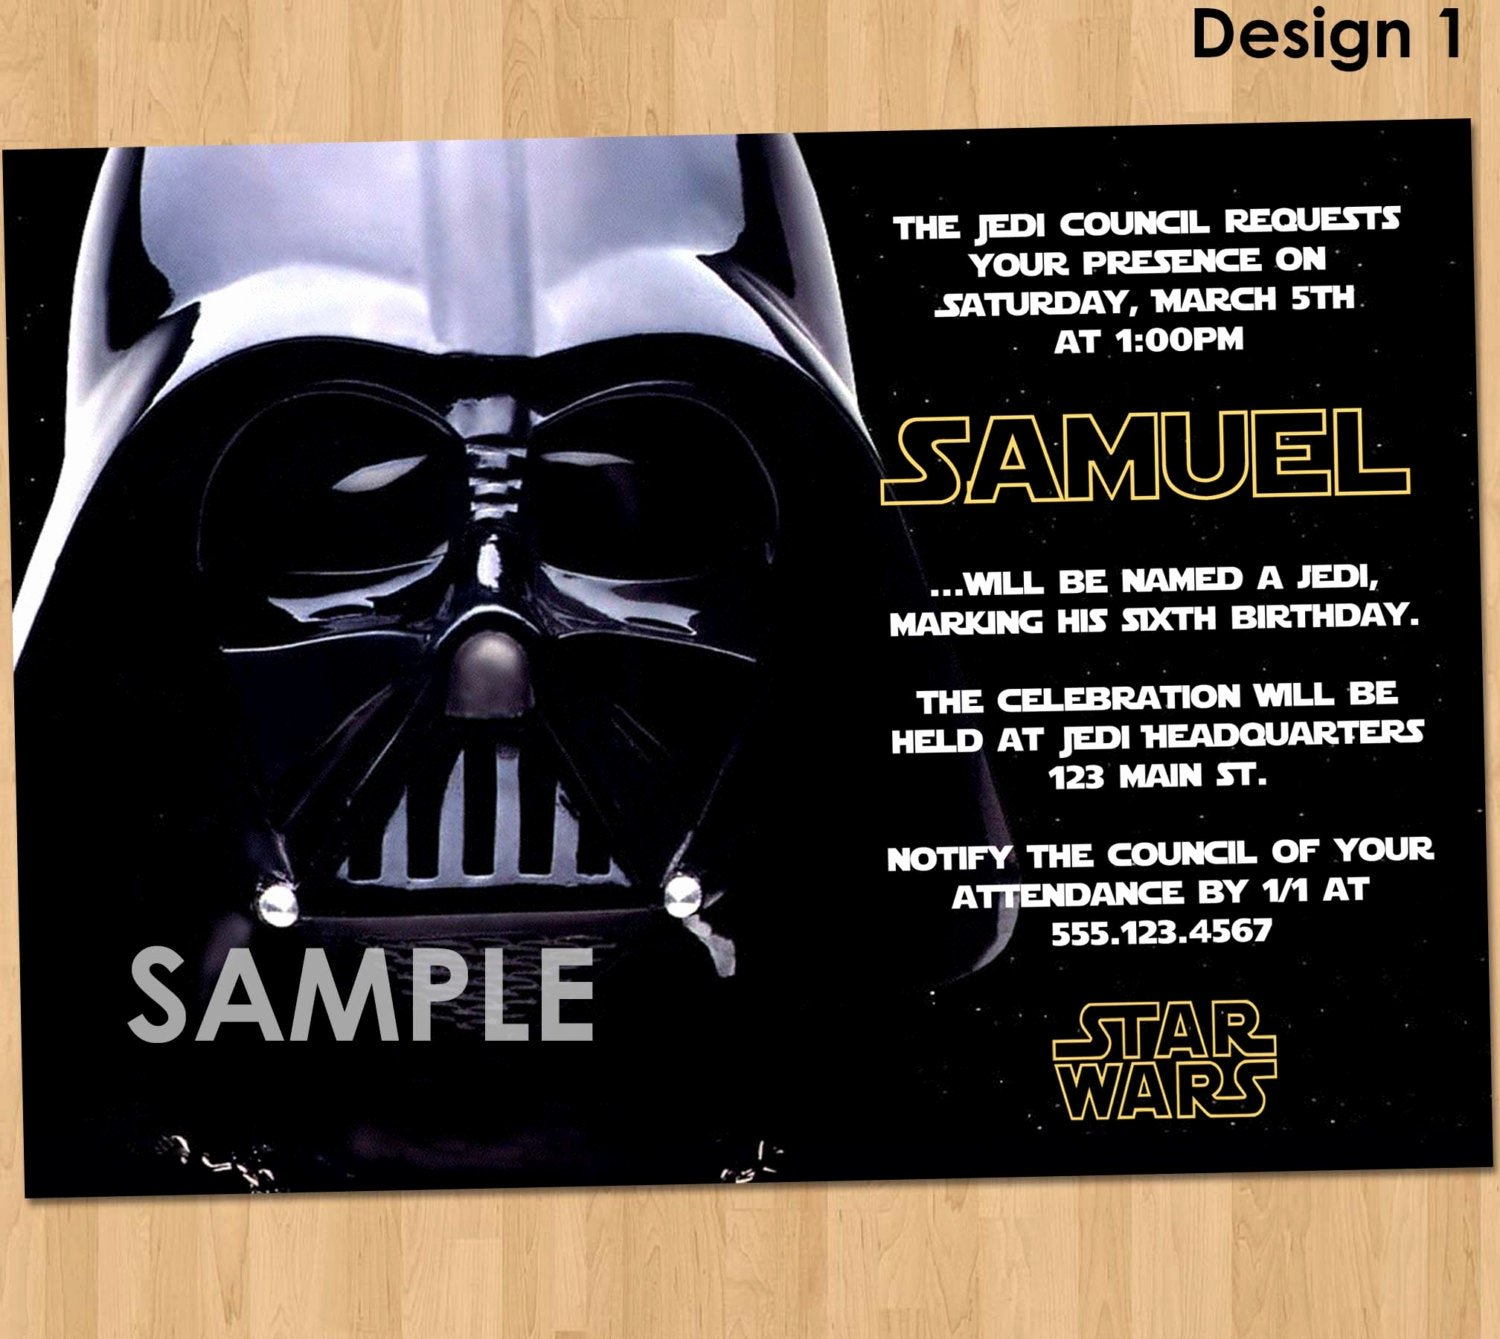 Star Wars Birthday Invitation Wording Elegant Star Wars Party Invitation Star Wars Party Printable Star